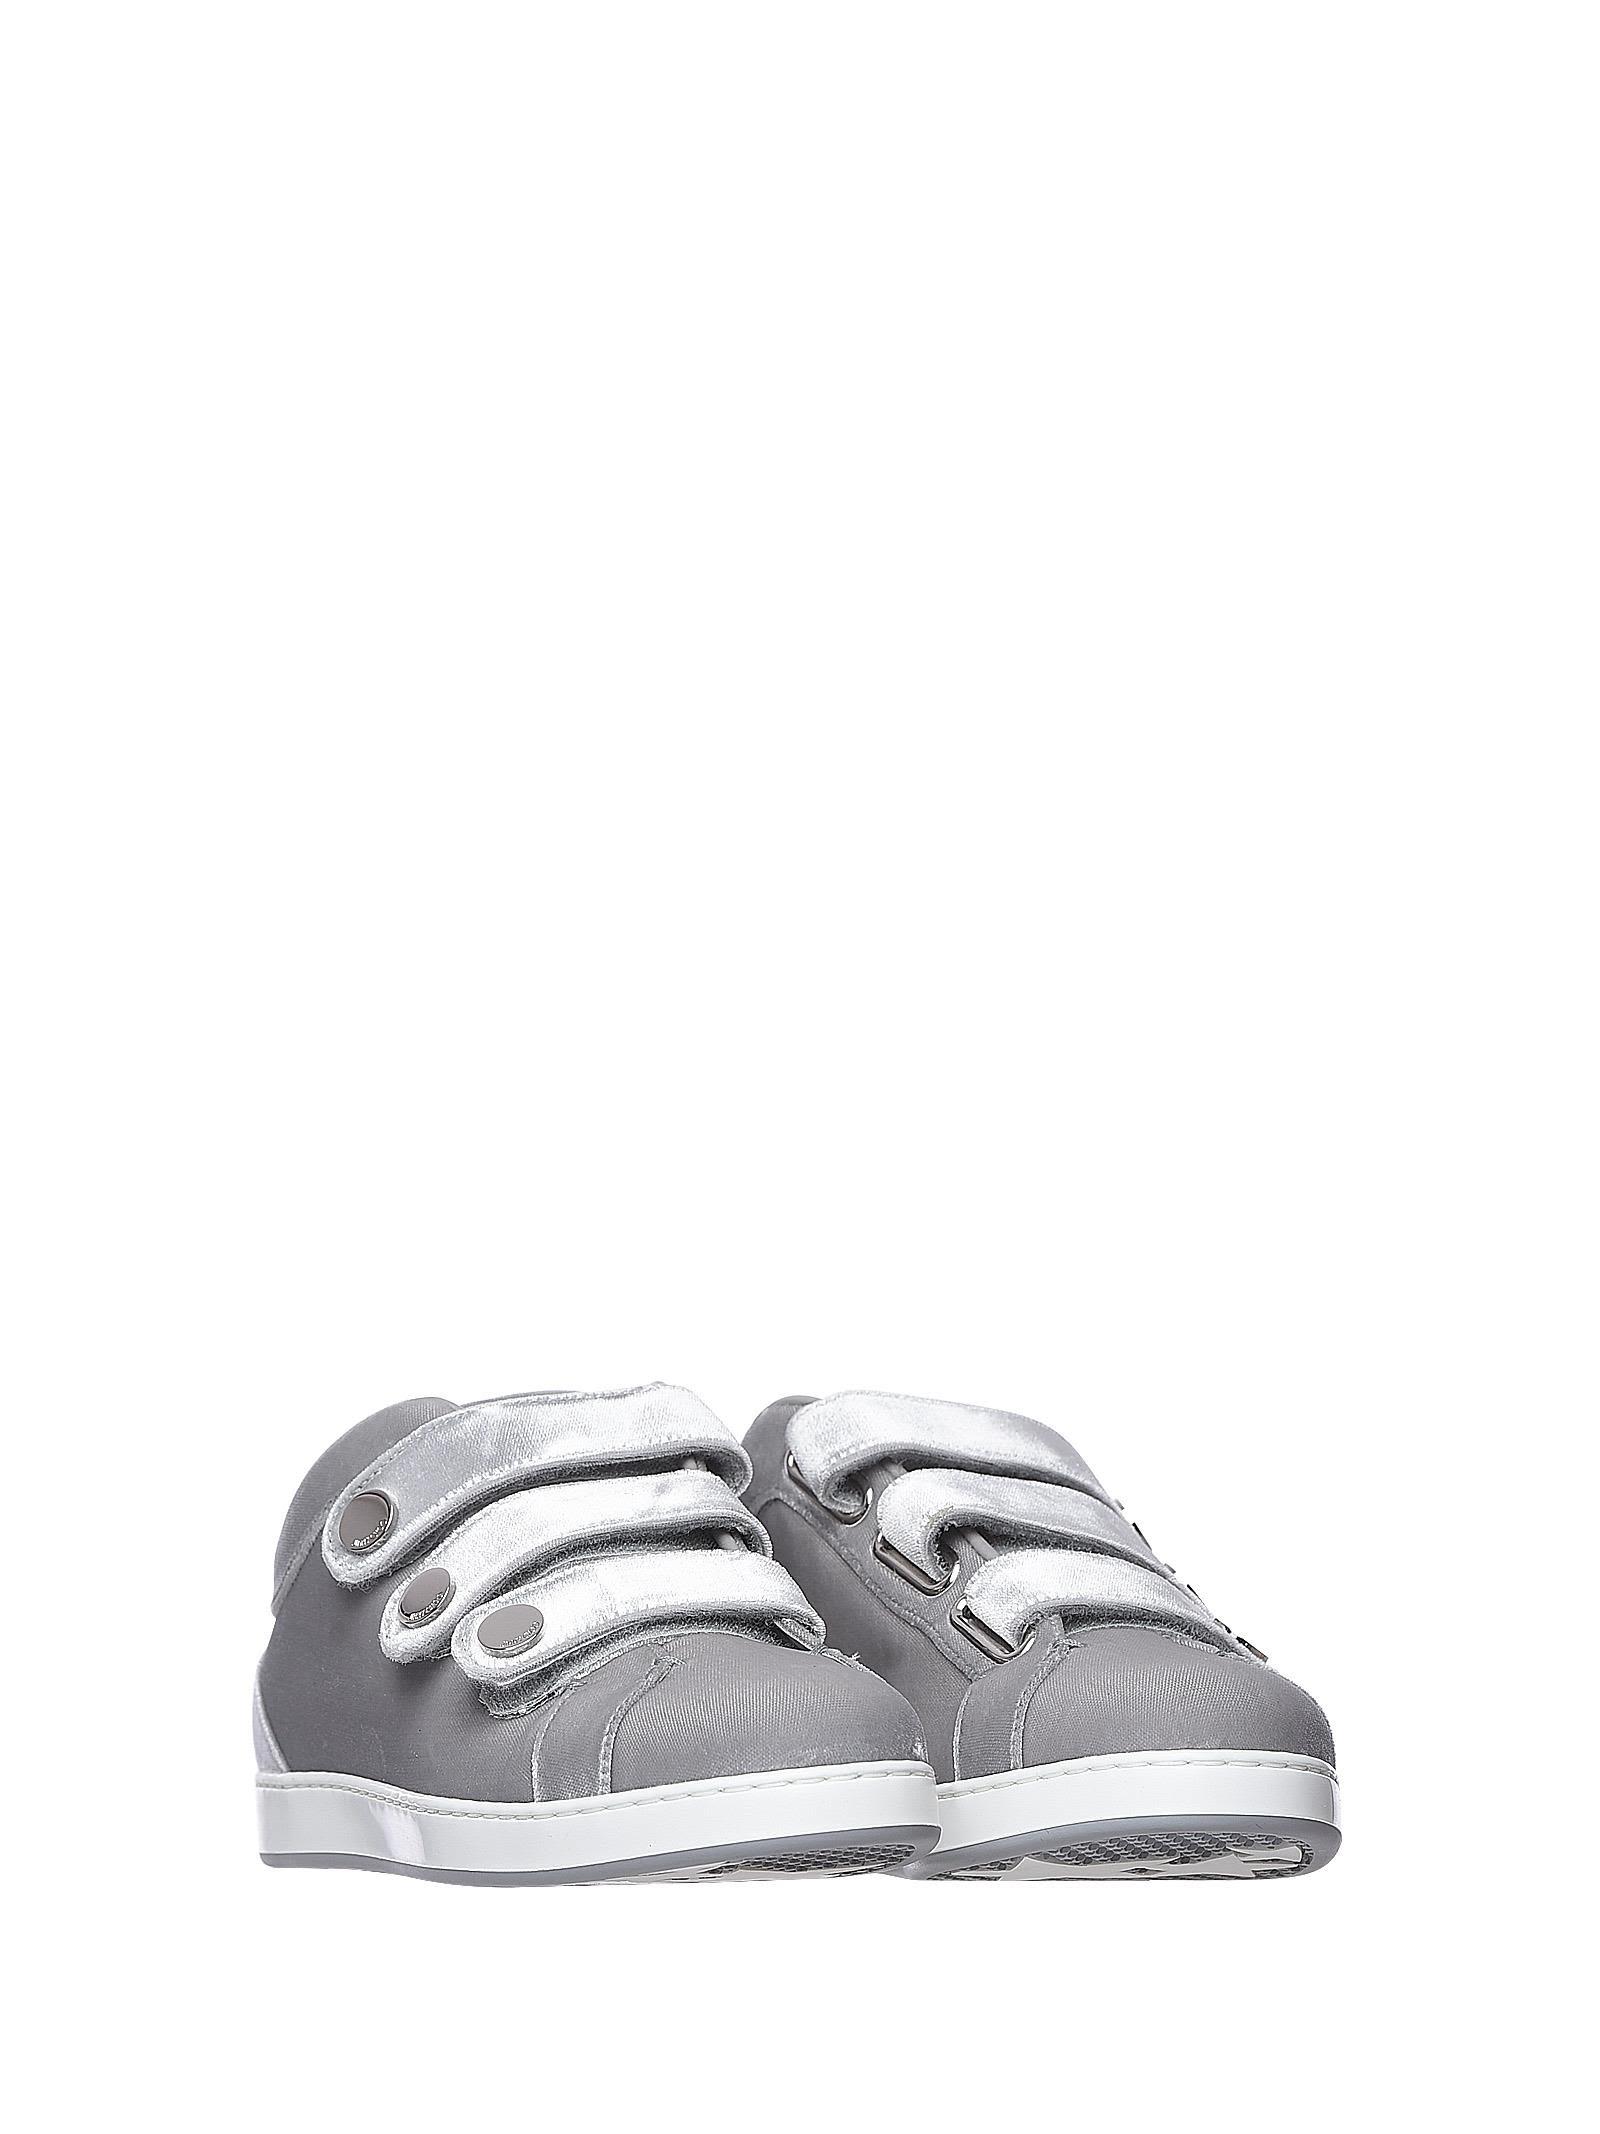 Jimmy choo Ny Sneakers Trainer Silver Newest Cheap Online Discount For Sale Inexpensive Online Factory Price m8br1SCfuP